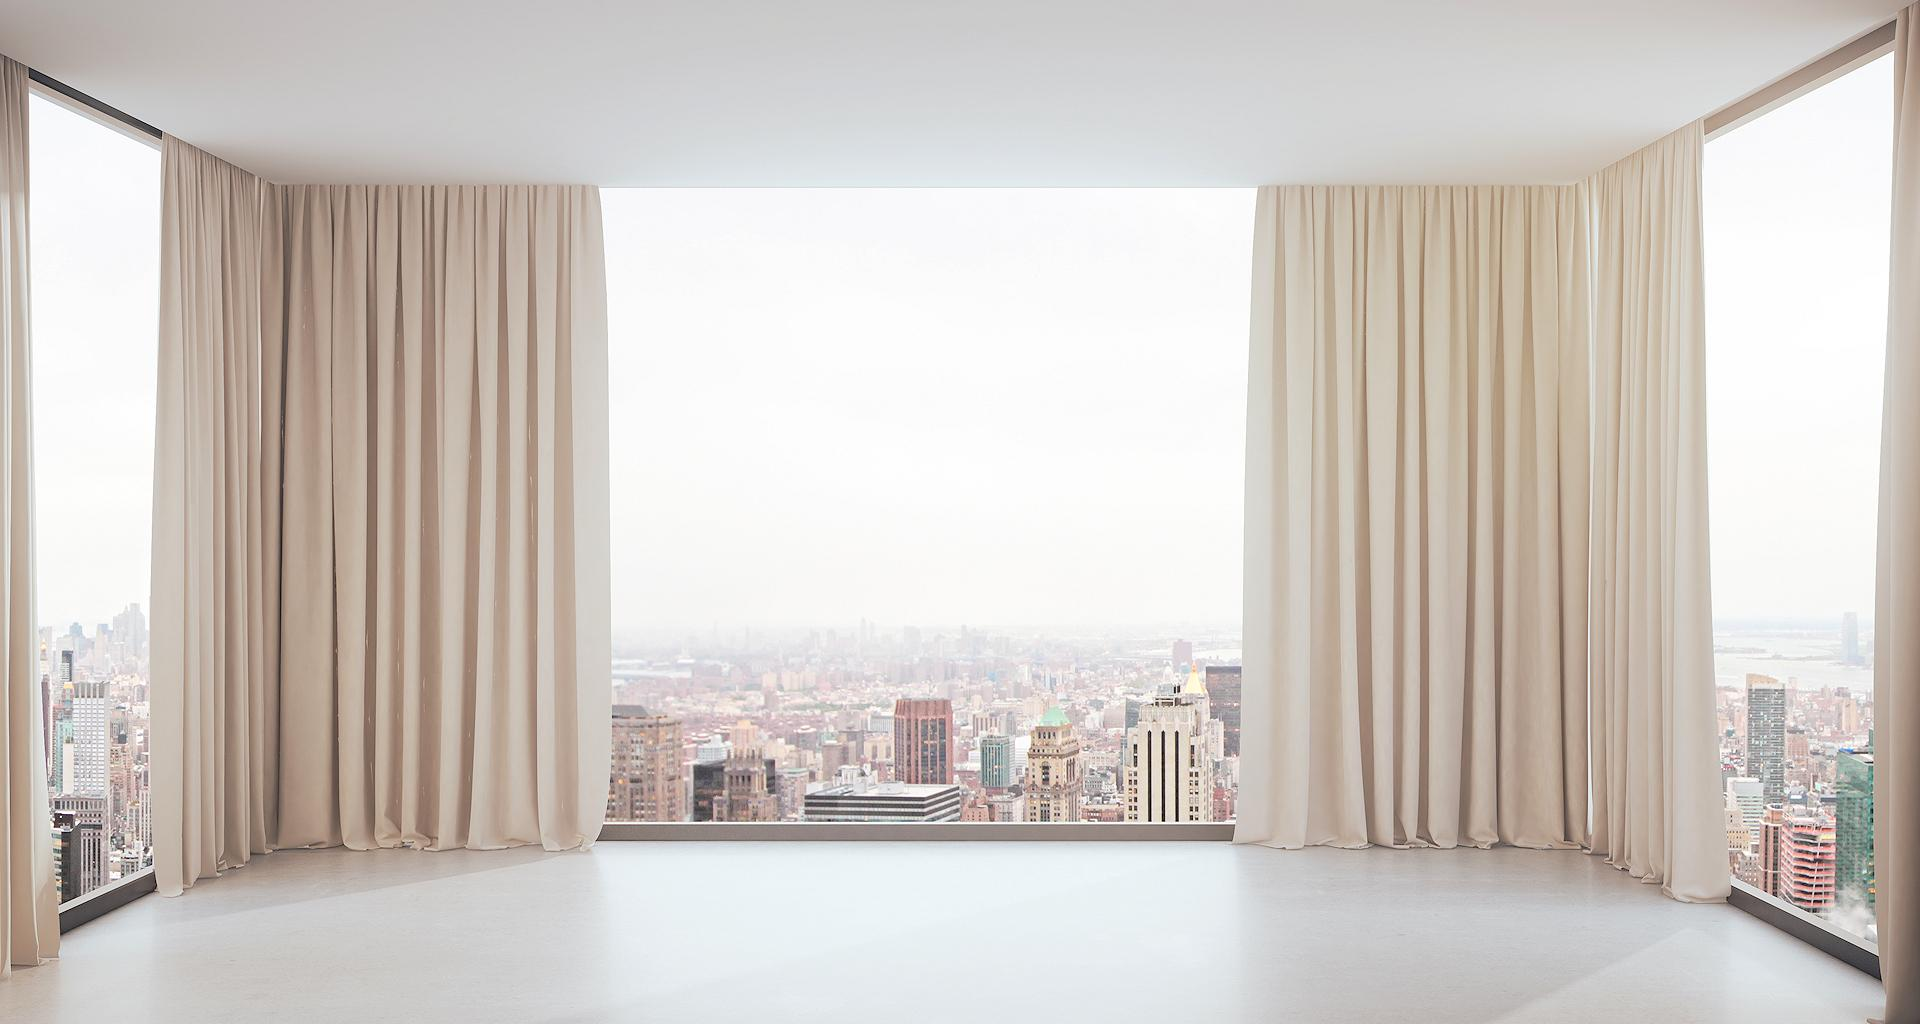 Why Are Curtains Important For A Bedroom Area?